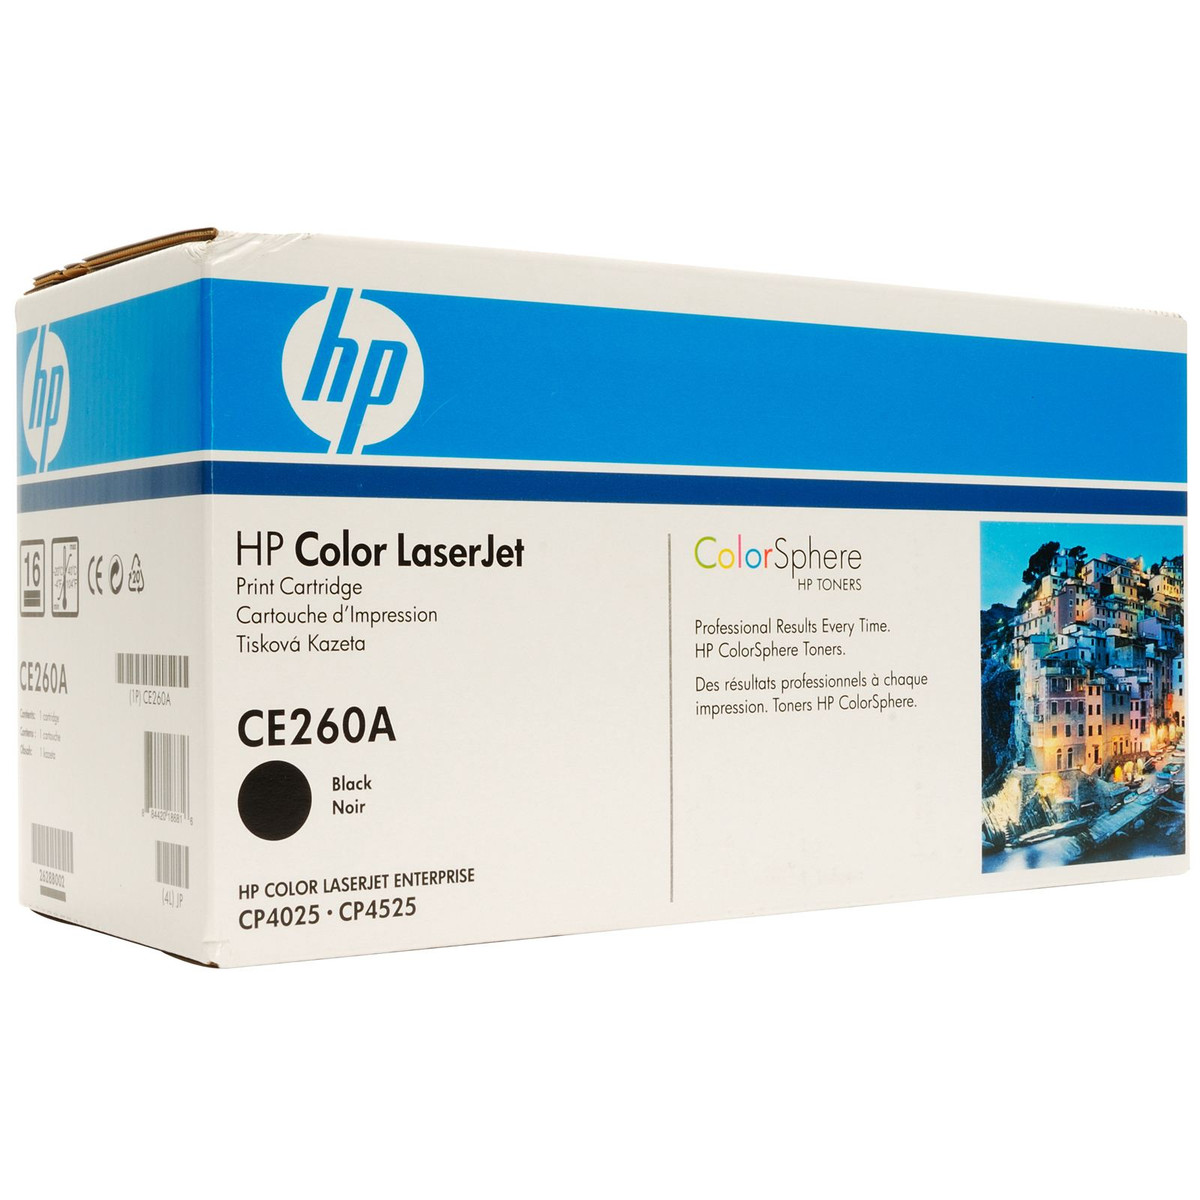 HP 647A (CE260A) Black Toner Cartridge